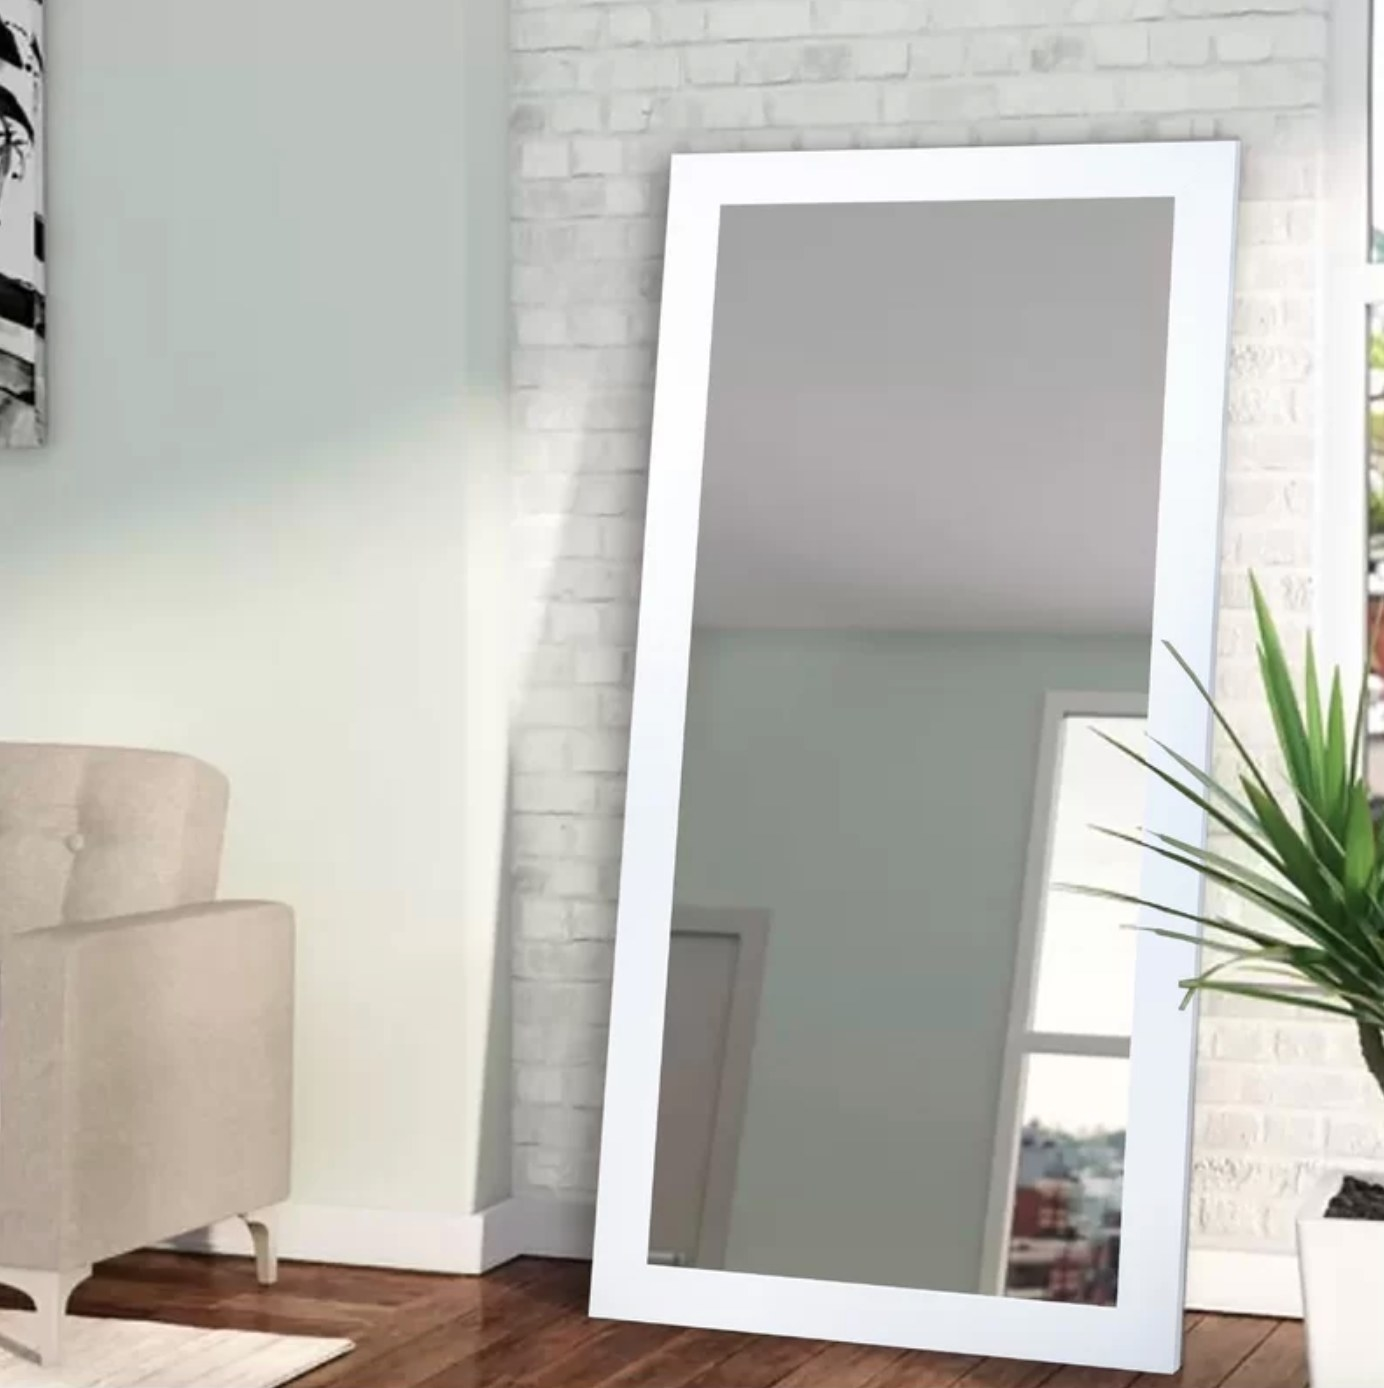 The full length mirror with a white frame